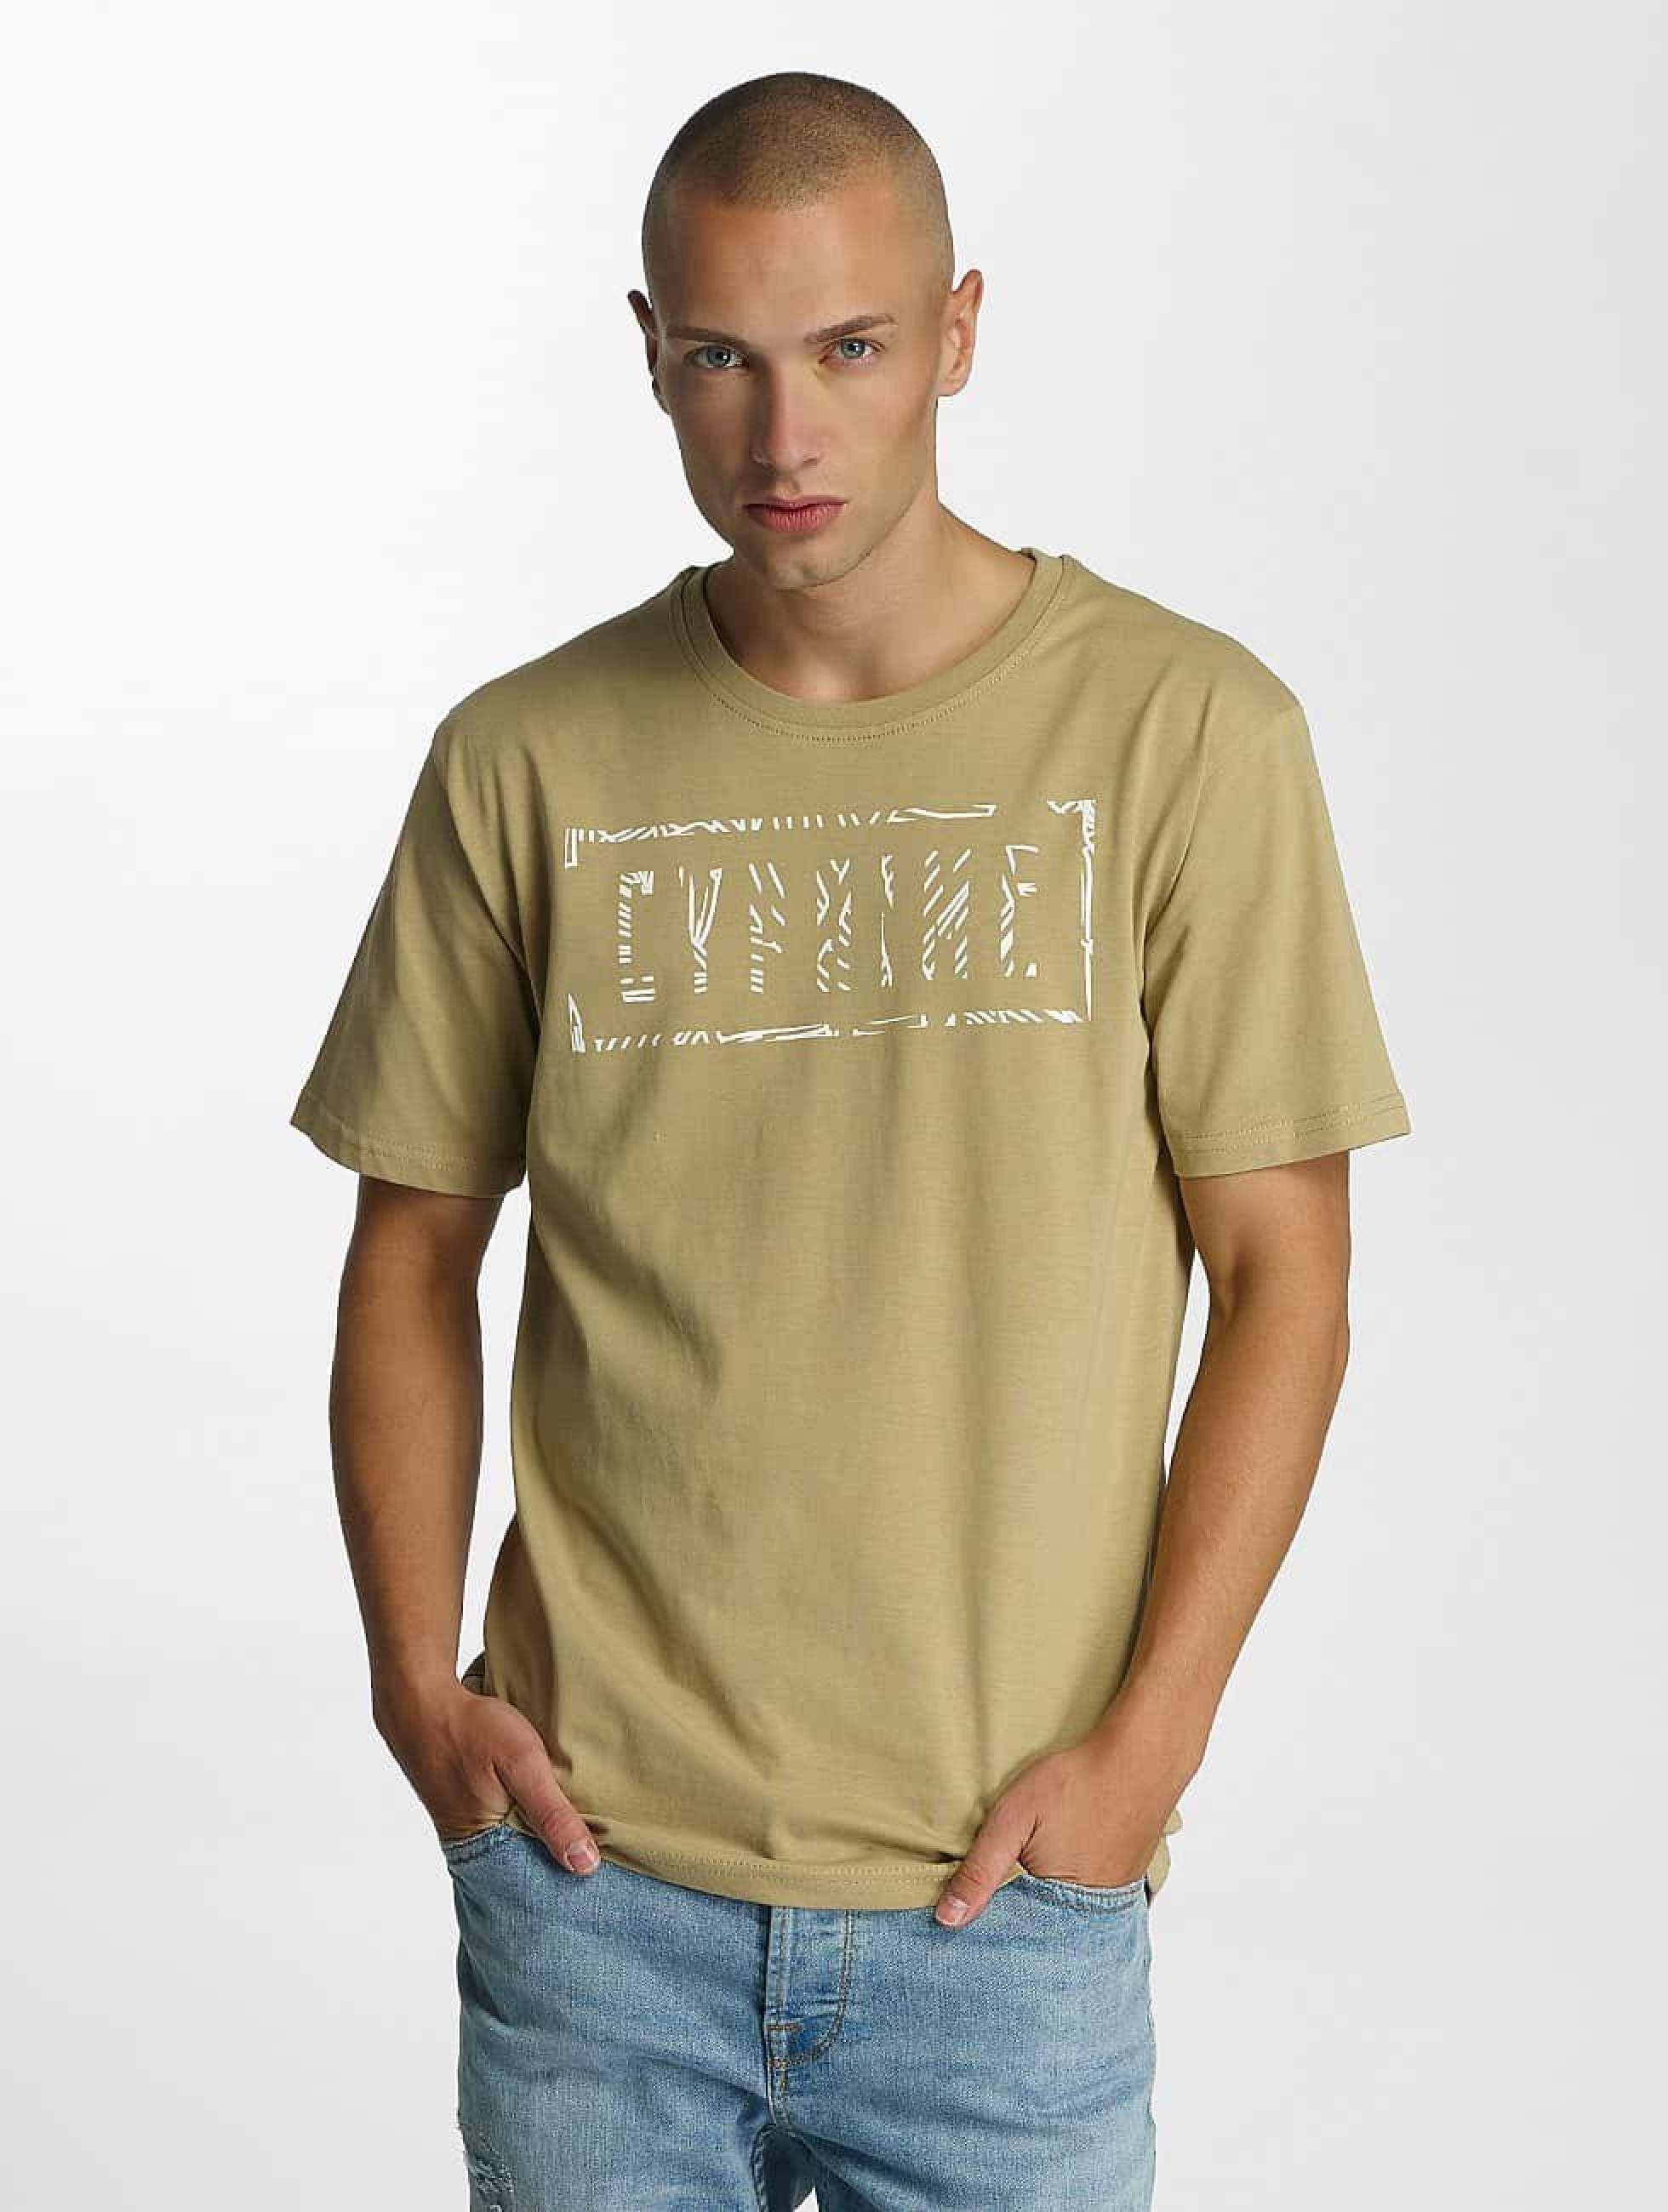 Cyprime / T-Shirt Cerium in beige XL